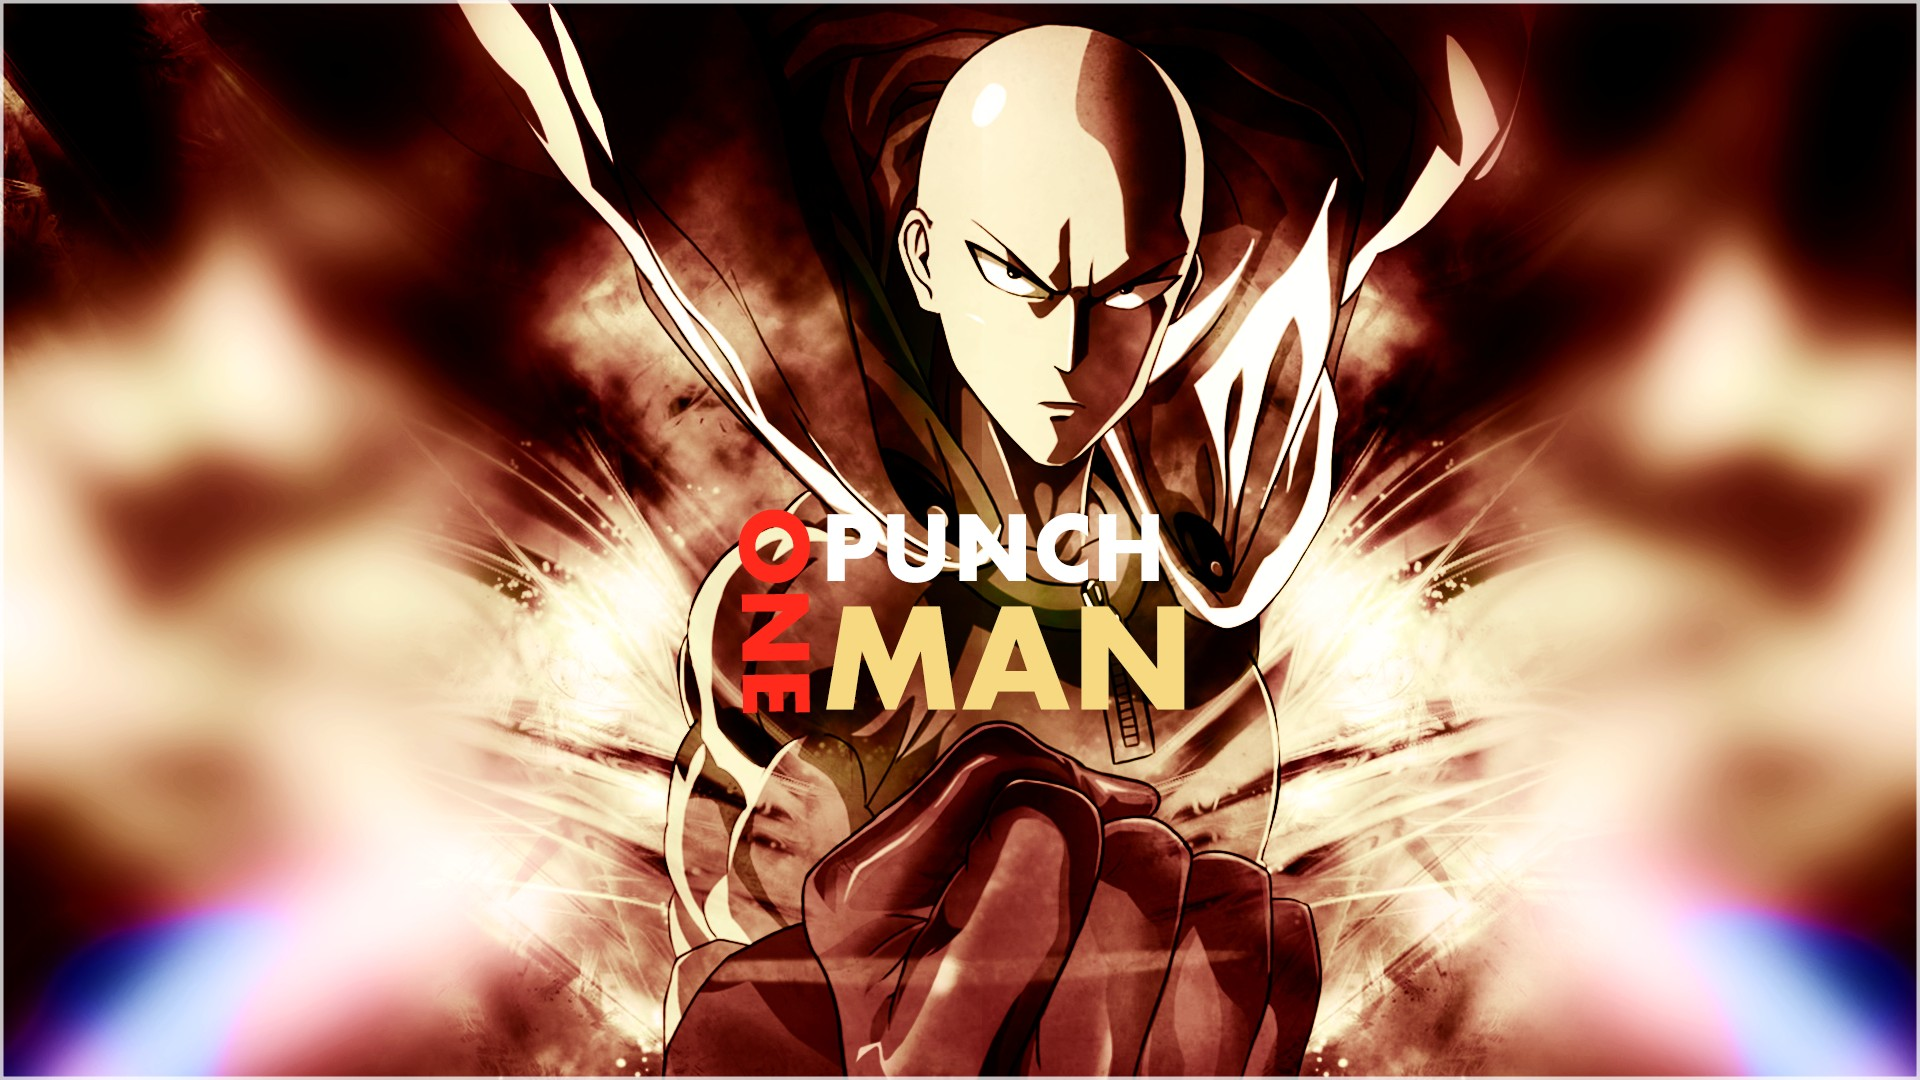 one punch man wallpaper hd download free stunning hd. Black Bedroom Furniture Sets. Home Design Ideas